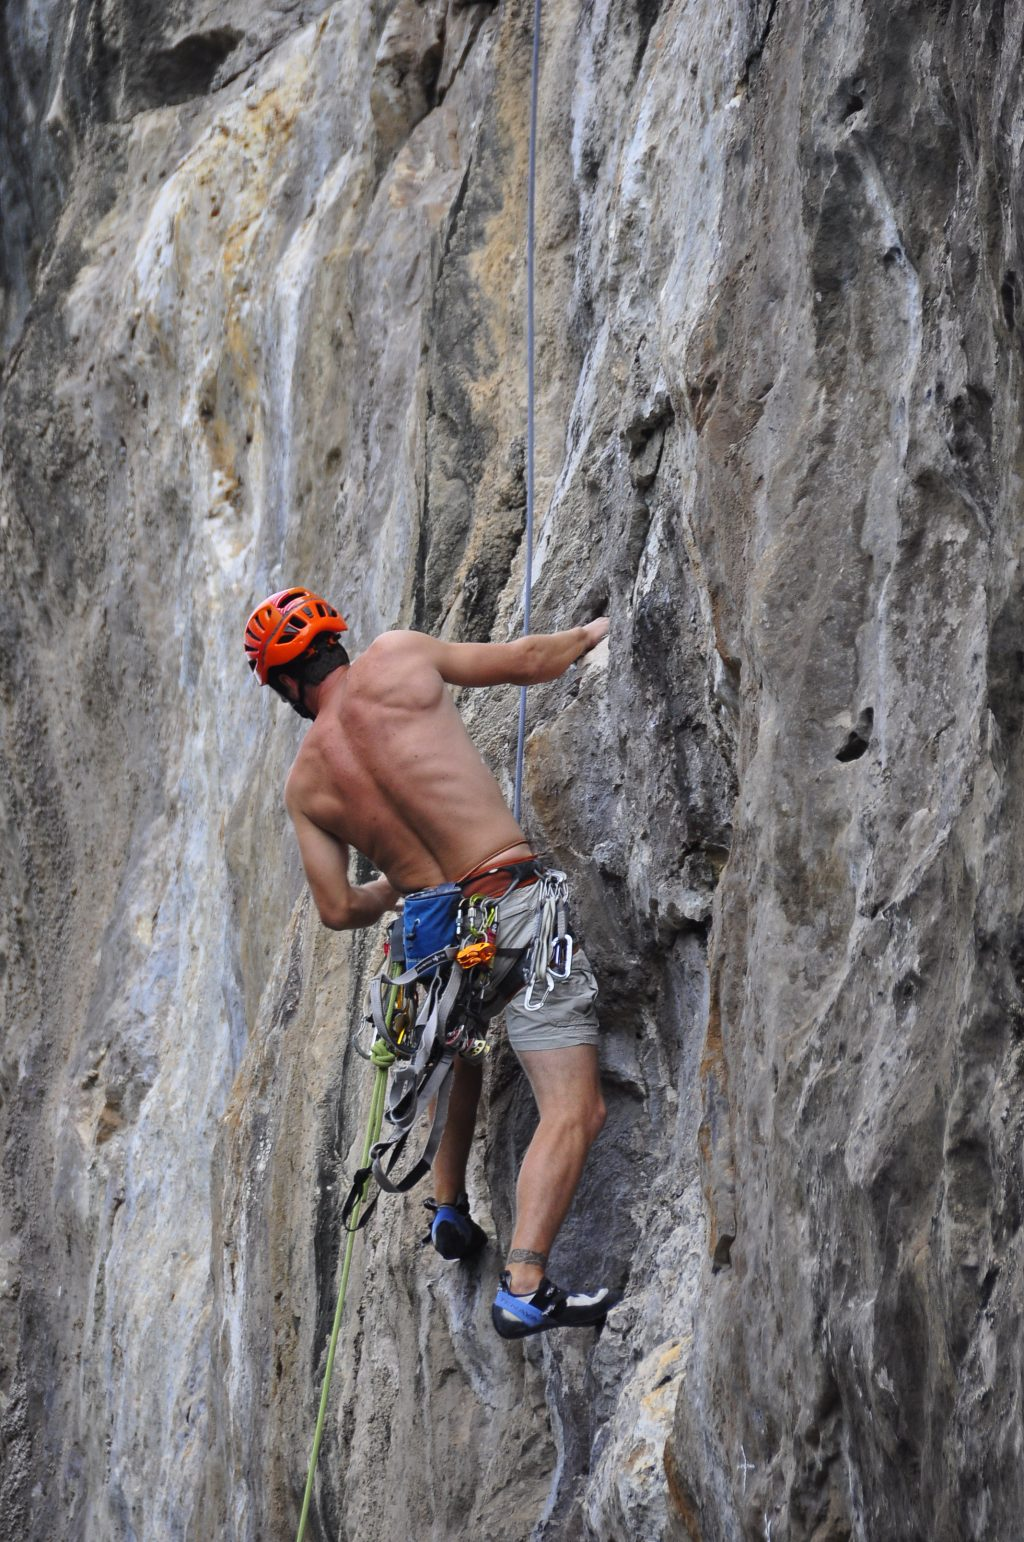 Climbing Cayman Brac - Working on routes